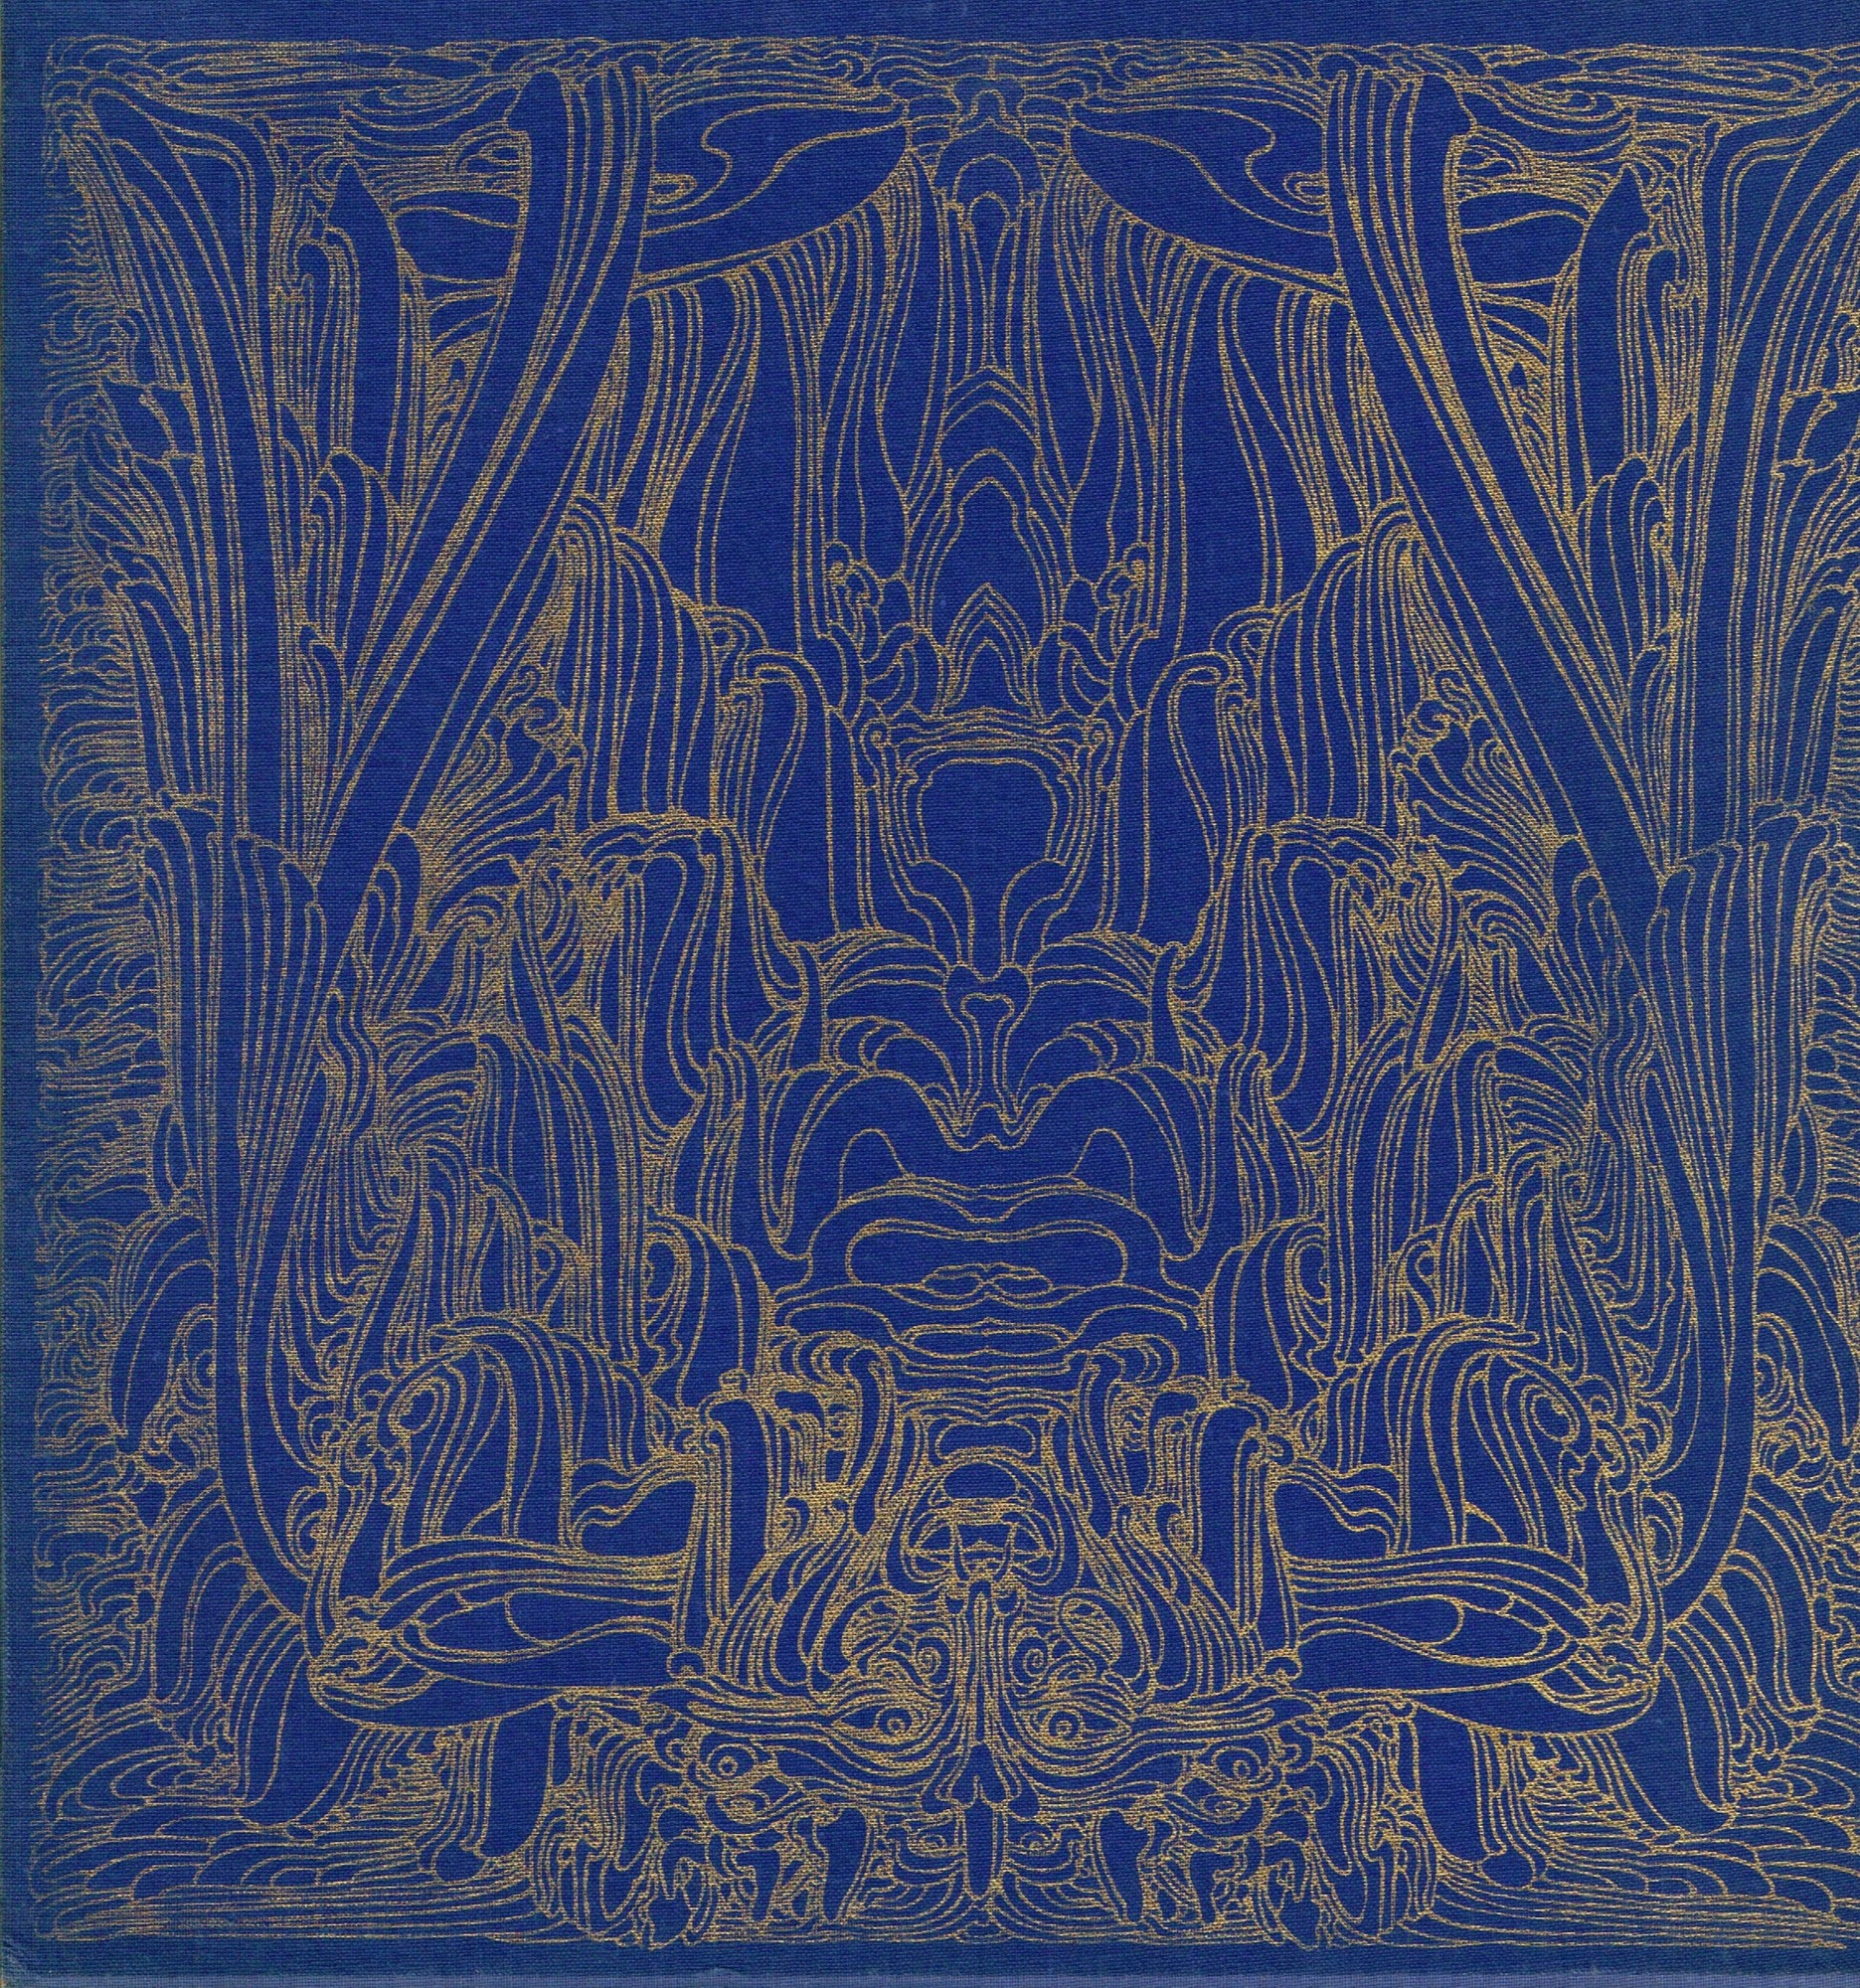 (FUCHS, ERNST). FUCHS, ERNST - ERNST FUCHS: ARCHITECTURA CAELESTIS (IMAGES OF THE HIDDEN PRIME OF STYLES) - DELUXE, SIGNED, SLIPCASED EDITION WITH TWO SIGNED ETCHINGS